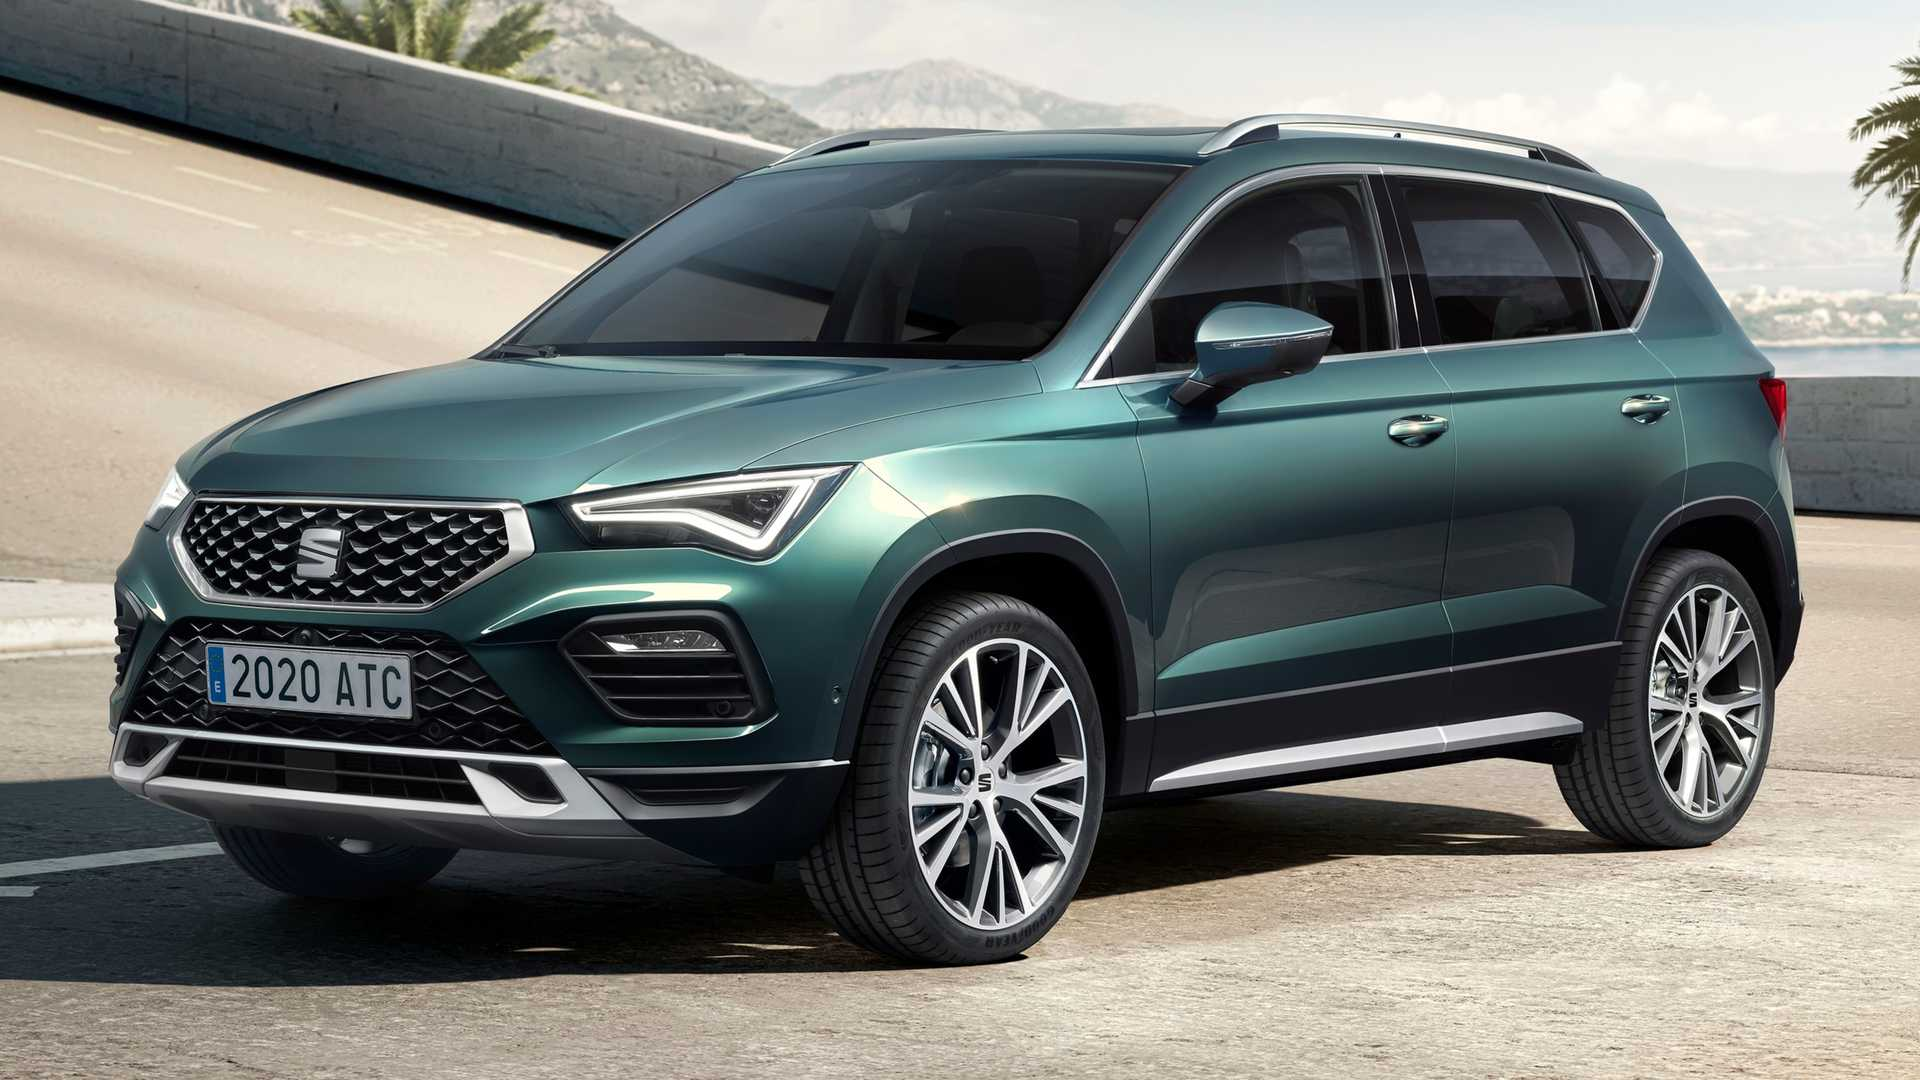 Seat Ateca face lifting (2021)